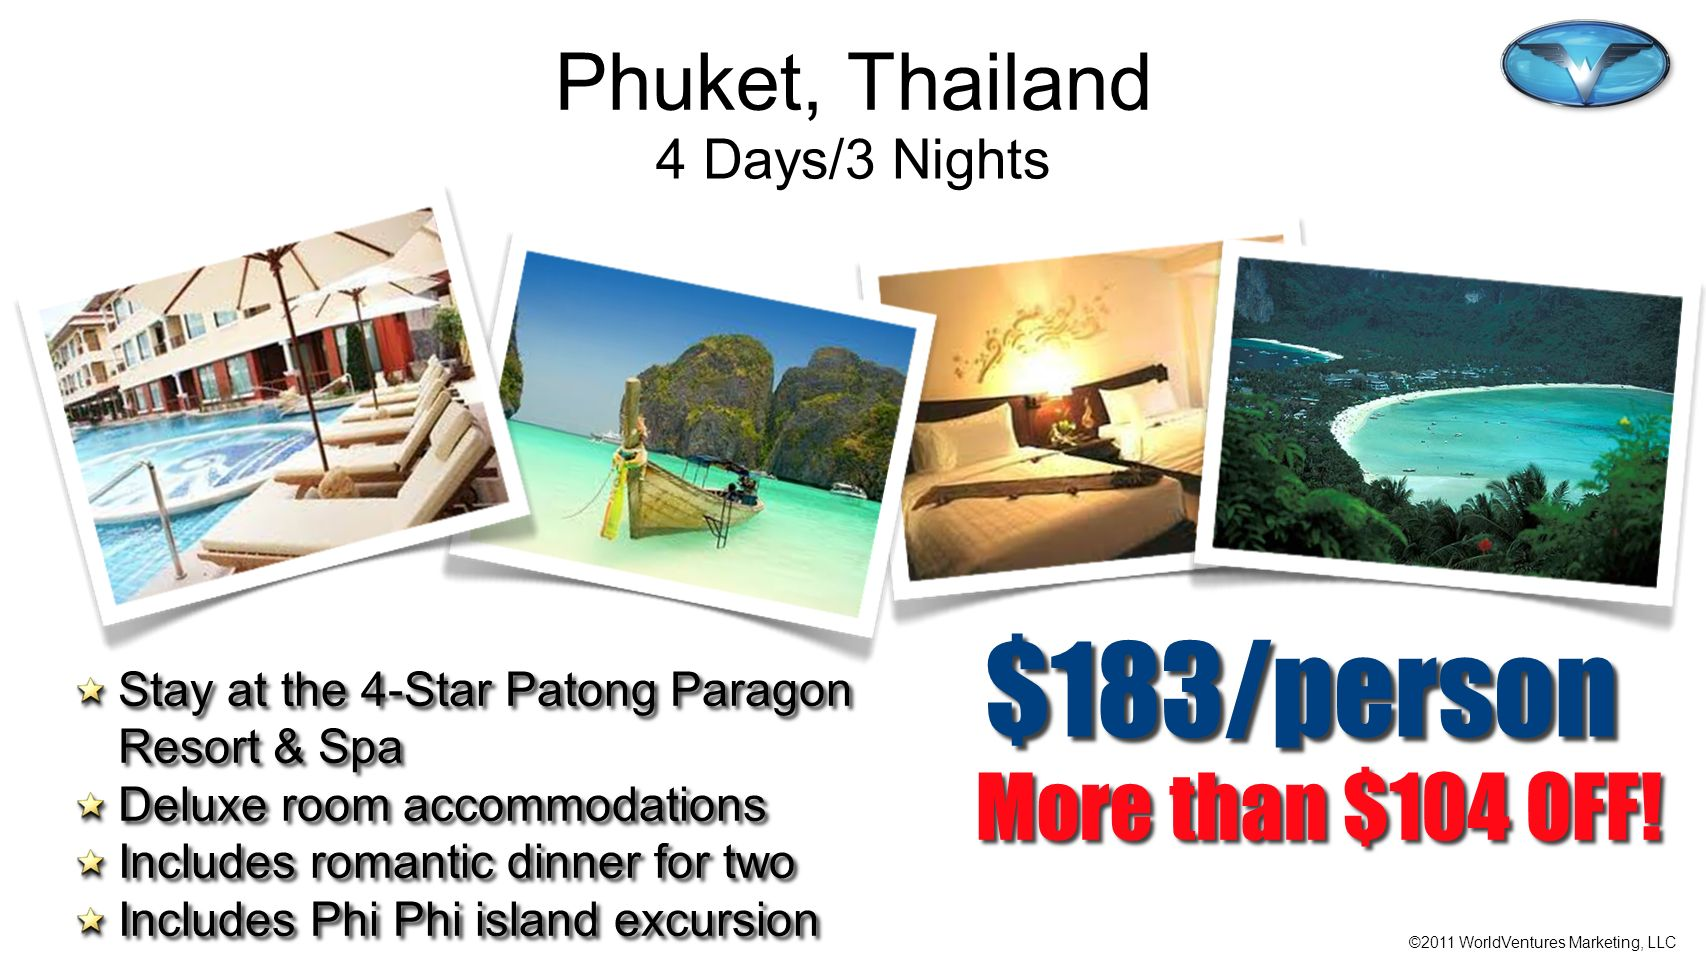 $183/person More than $104 OFF! Phuket, Thailand 4 Days/3 Nights